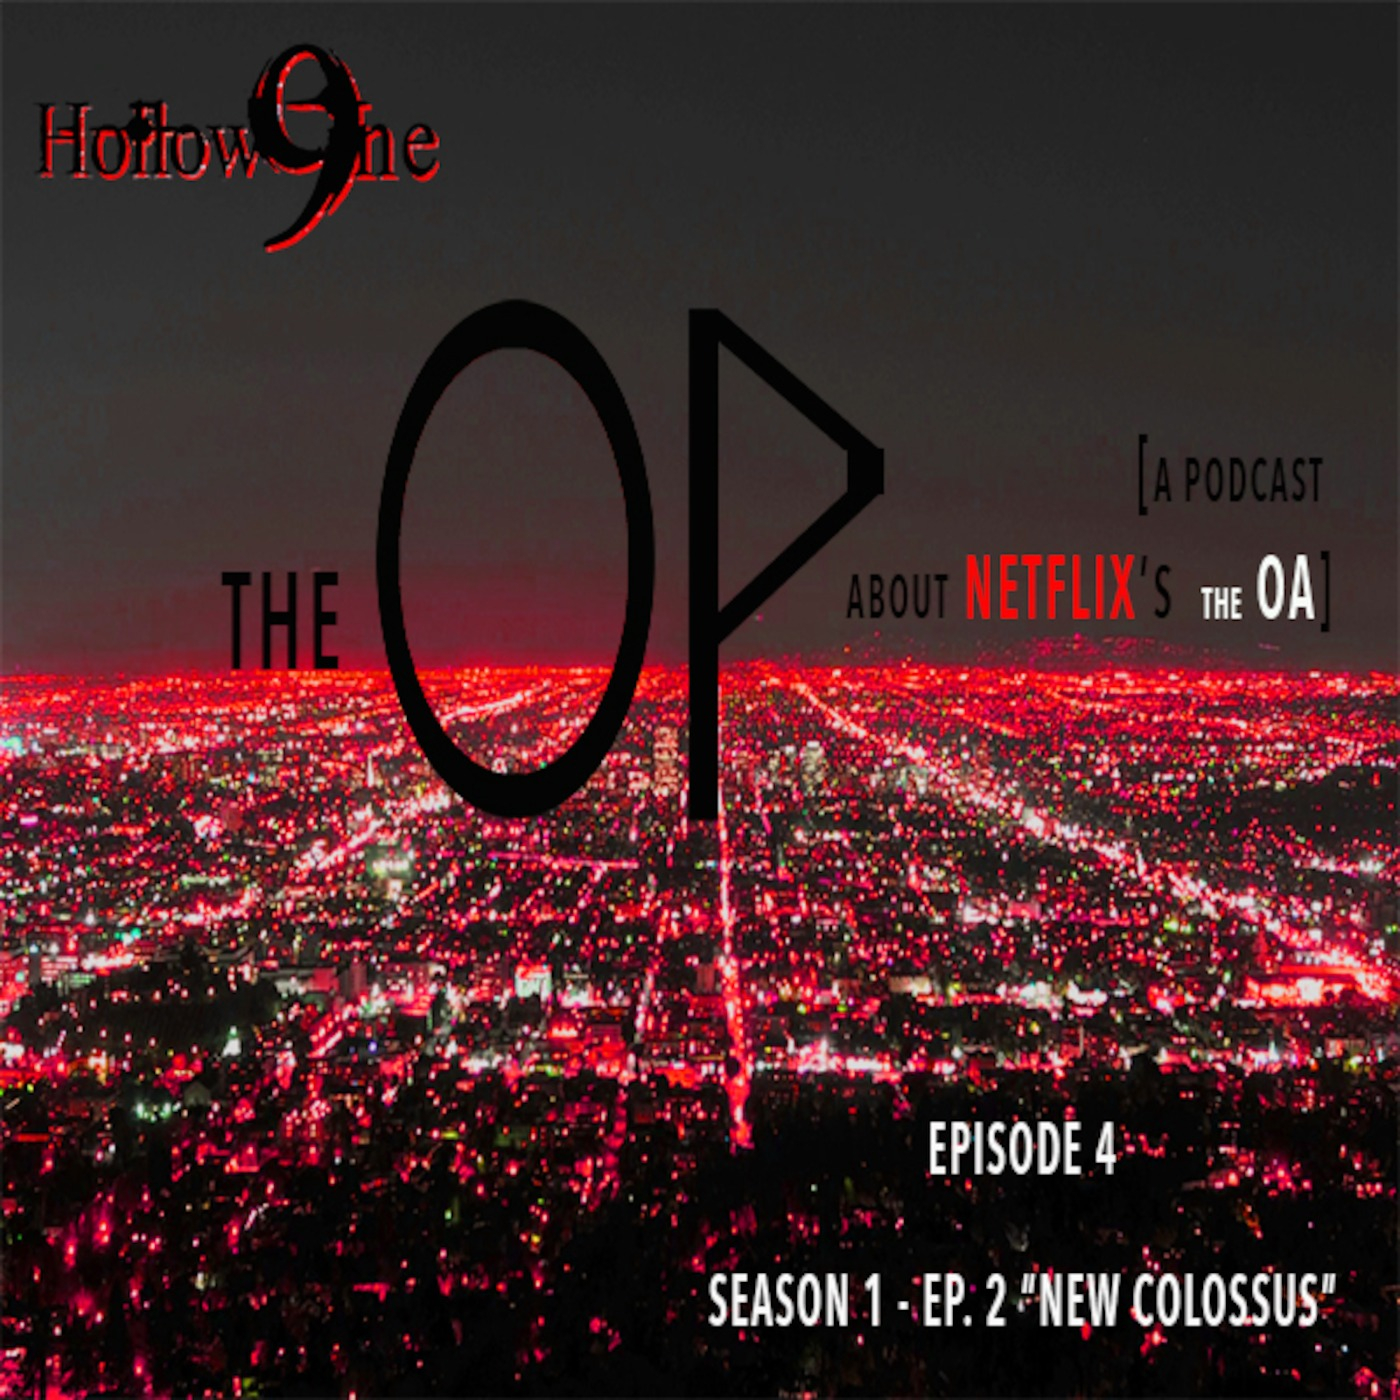 The OP - Episode 4: The OA 102